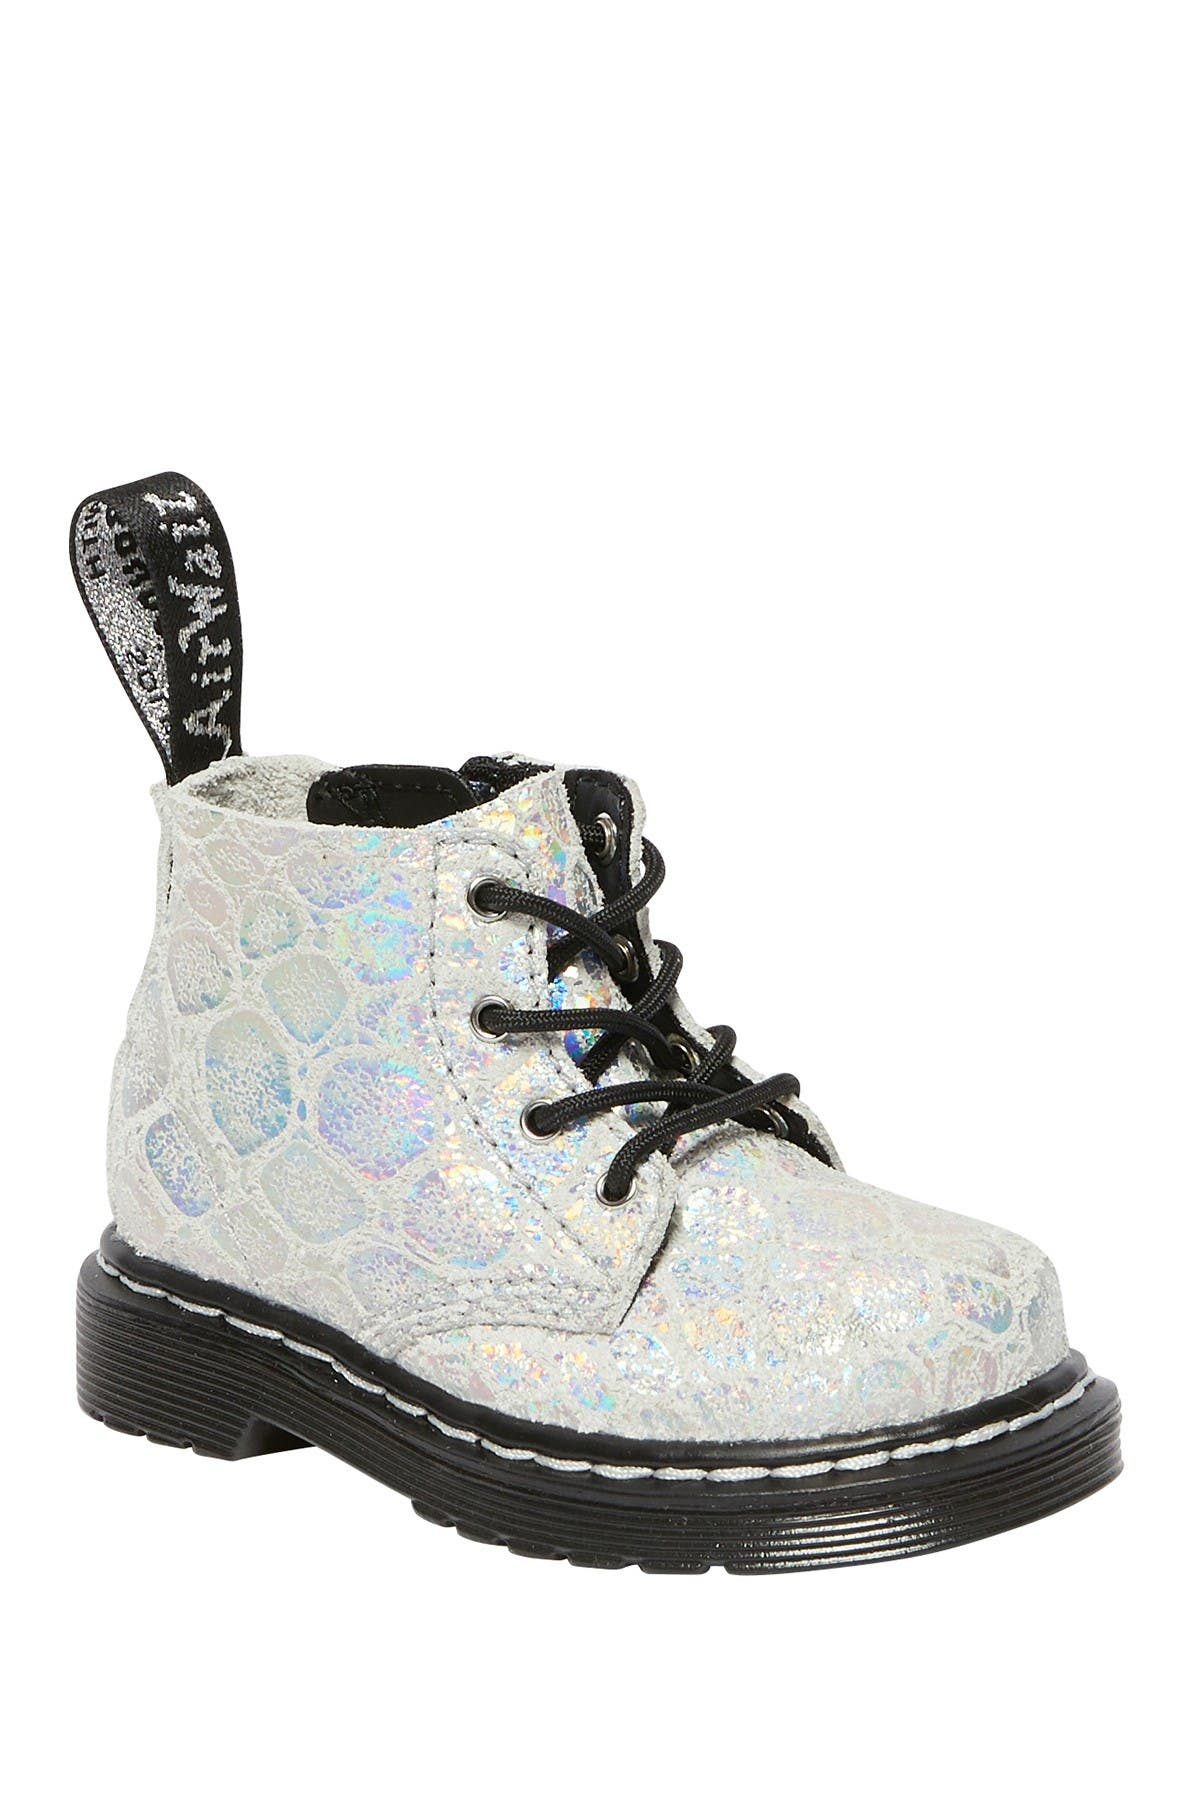 Image of Dr. Martens 1460 Croc Embossed Pascal Boot